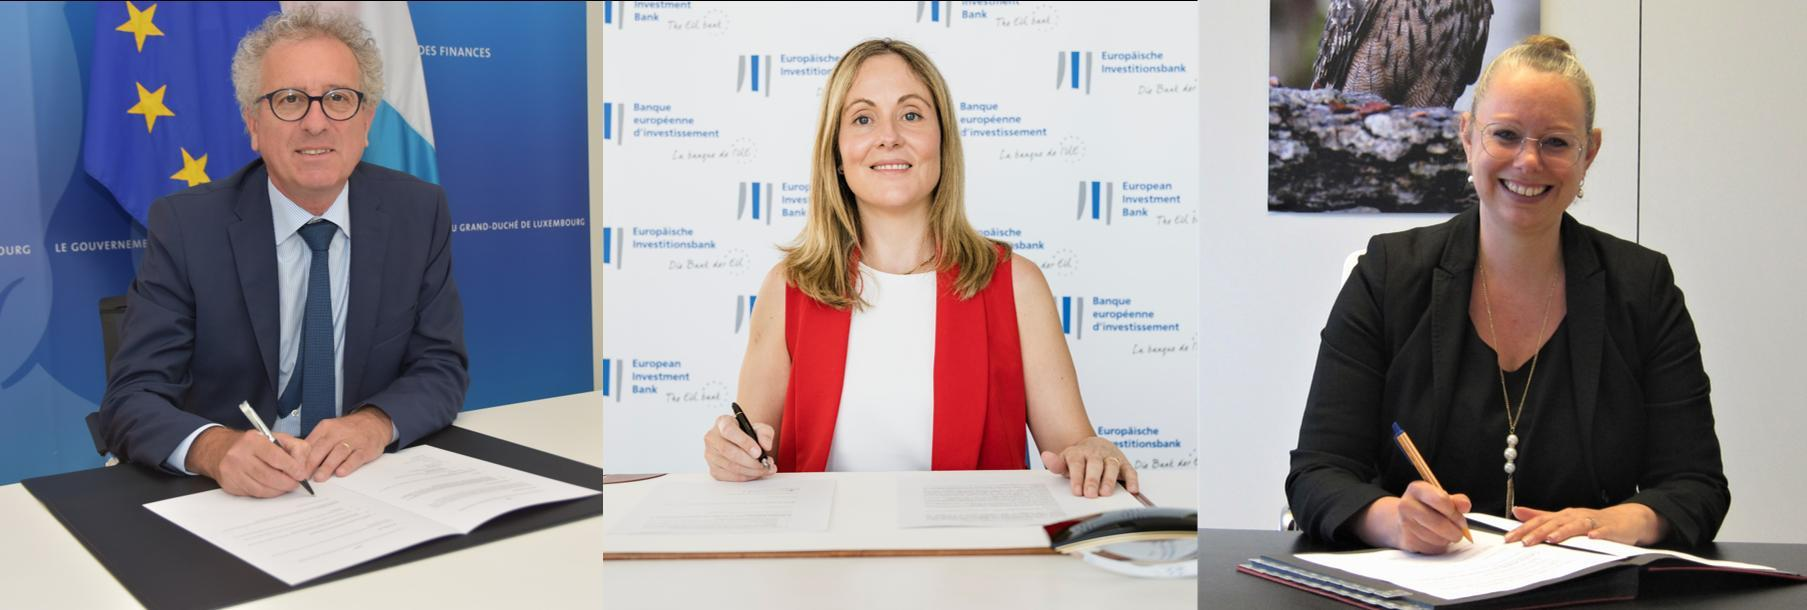 EIB and International Climate Finance Accelerator Luxembourg join forces to shape the leading climate finance fund managers of tomorrow